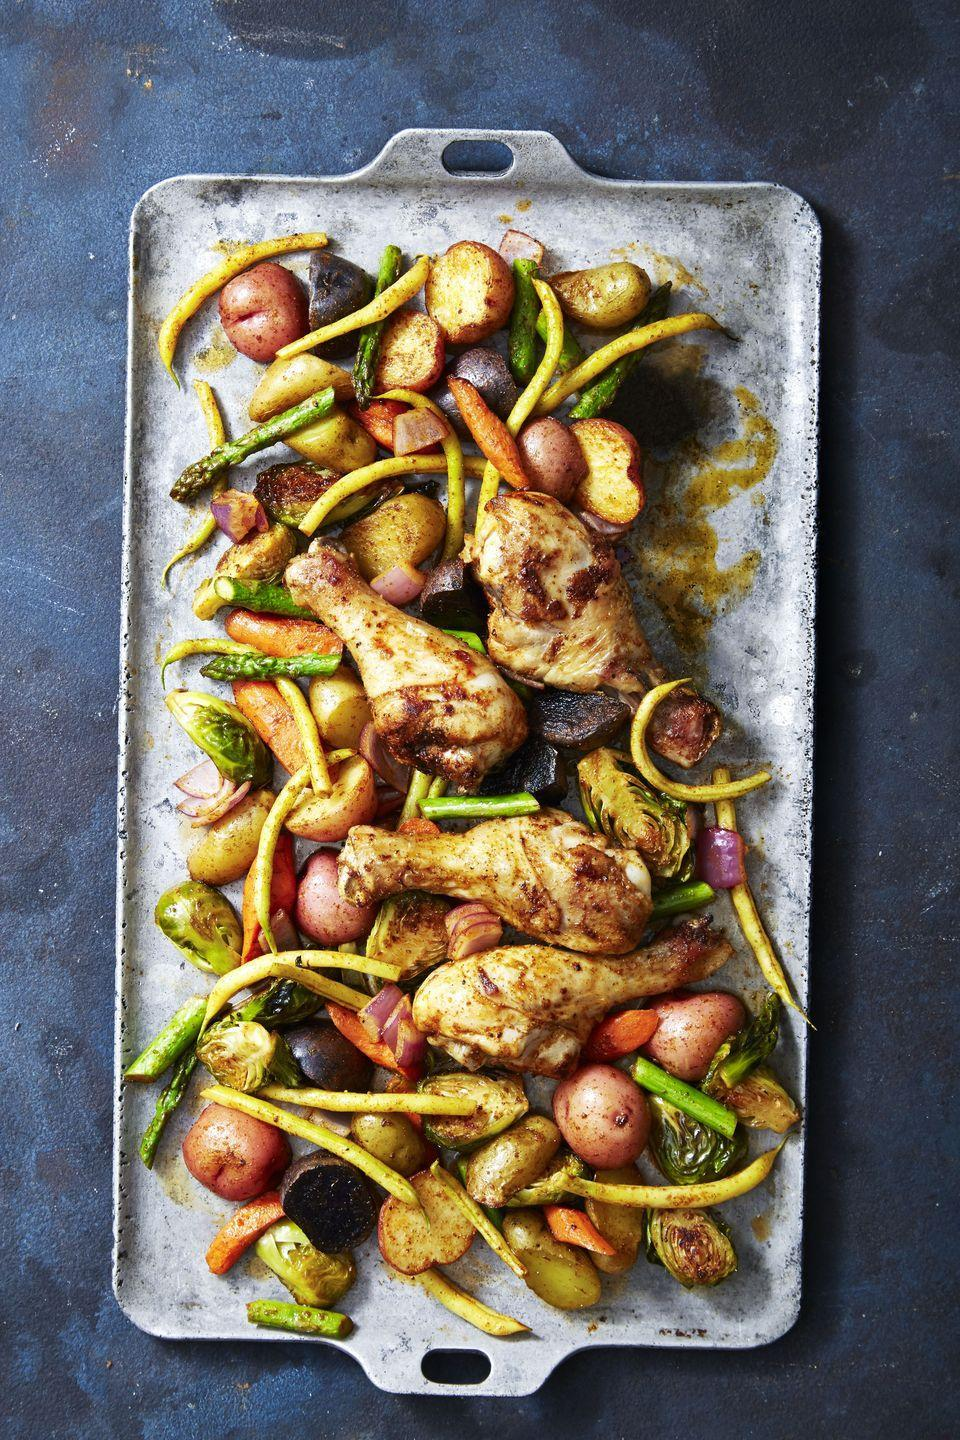 "<p>Throw it all on the pan, roast it up, and call it dinner.</p><p><em><a href=""https://www.goodhousekeeping.com/food-recipes/a40386/rustic-smoky-glazed-chicken-veggie-bake-recipe/"" rel=""nofollow noopener"" target=""_blank"" data-ylk=""slk:Get the recipe for Rustic Smoky Glazed Chicken and Veggie Bake »"" class=""link rapid-noclick-resp"">Get the recipe for Rustic Smoky Glazed Chicken and Veggie Bake »</a></em></p>"